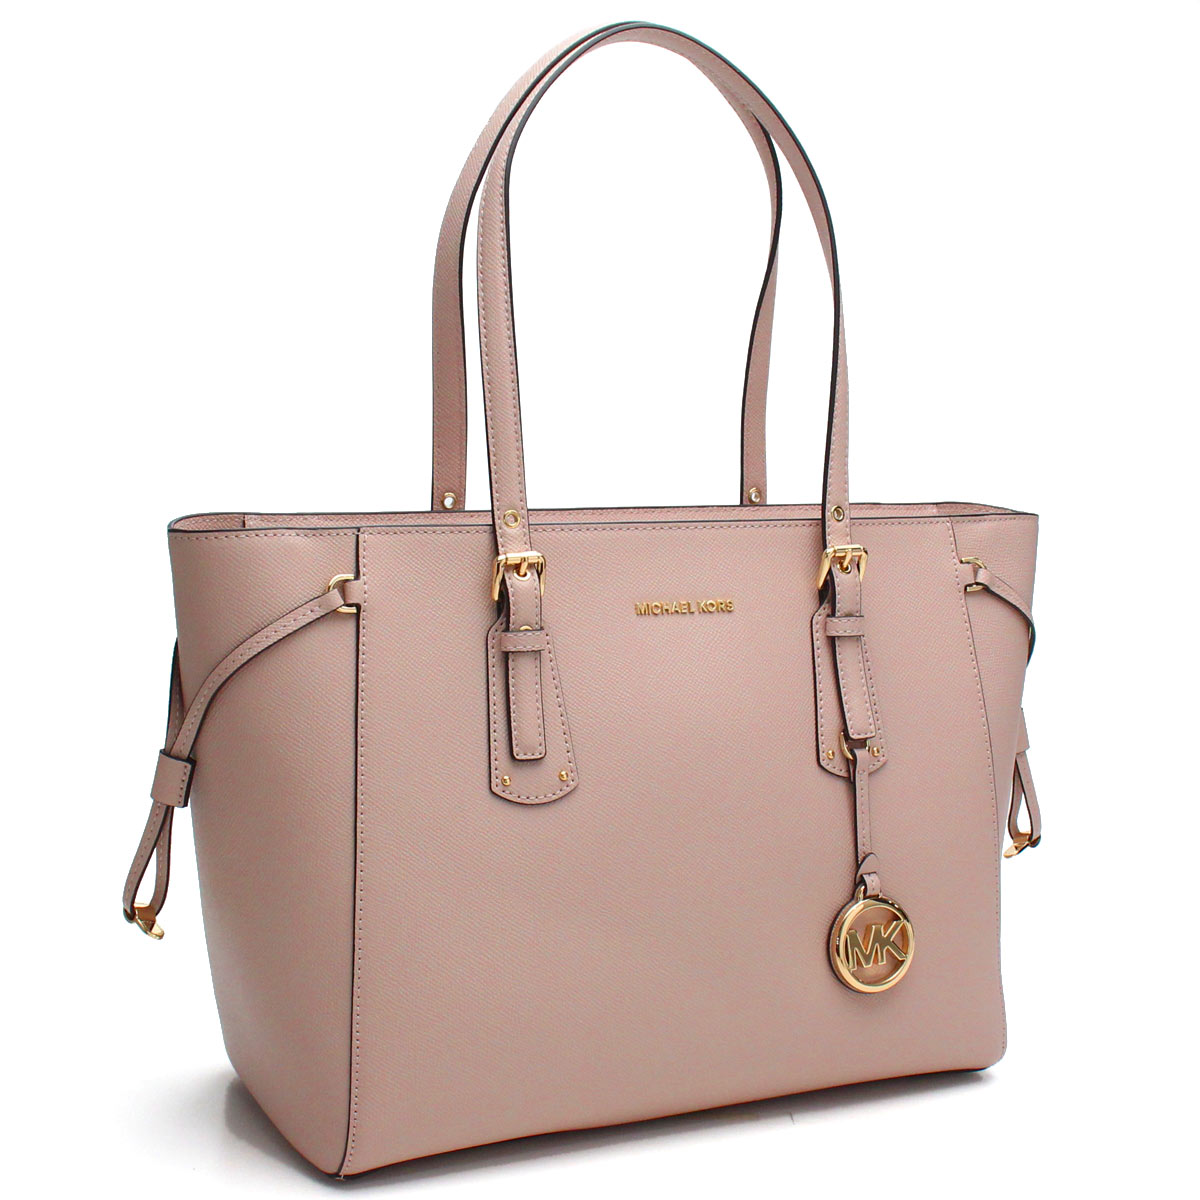 84e94d0316abe Bighit The total brand wholesale  Michael Kors MICHAEL KORS bag VOYAGER  tote bag 30H7GV6T8L SOFT PINK pink system